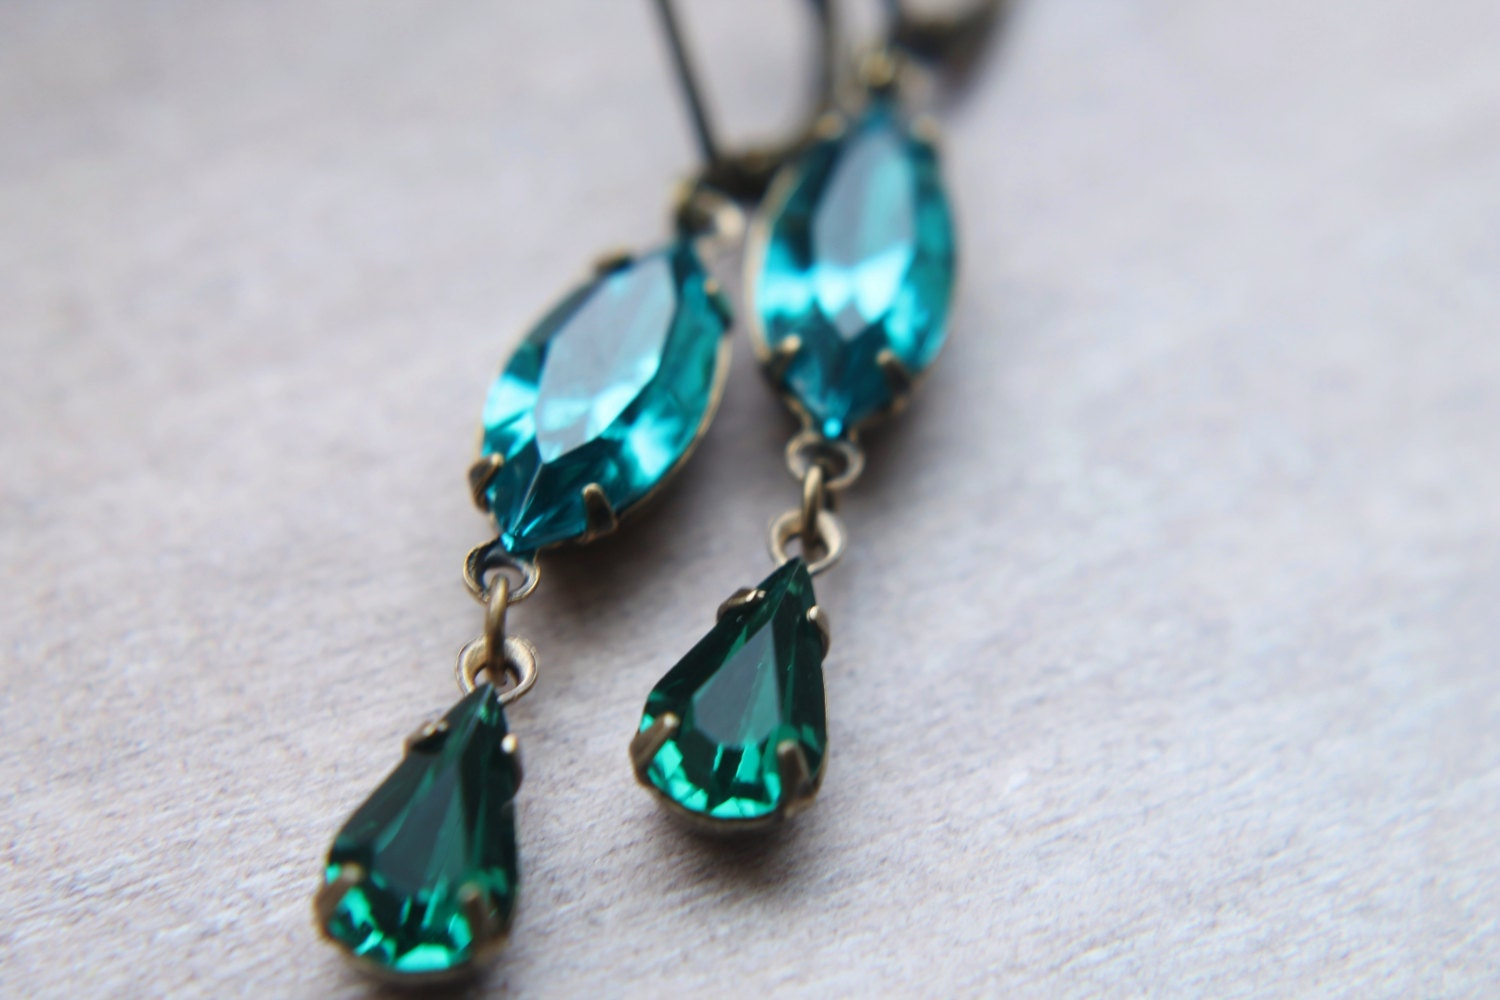 Long Swarovski Earrings - Teal Emerald Estate Heirloom Rhinestone Crystal Handmade Jewelry Gifts for Her.